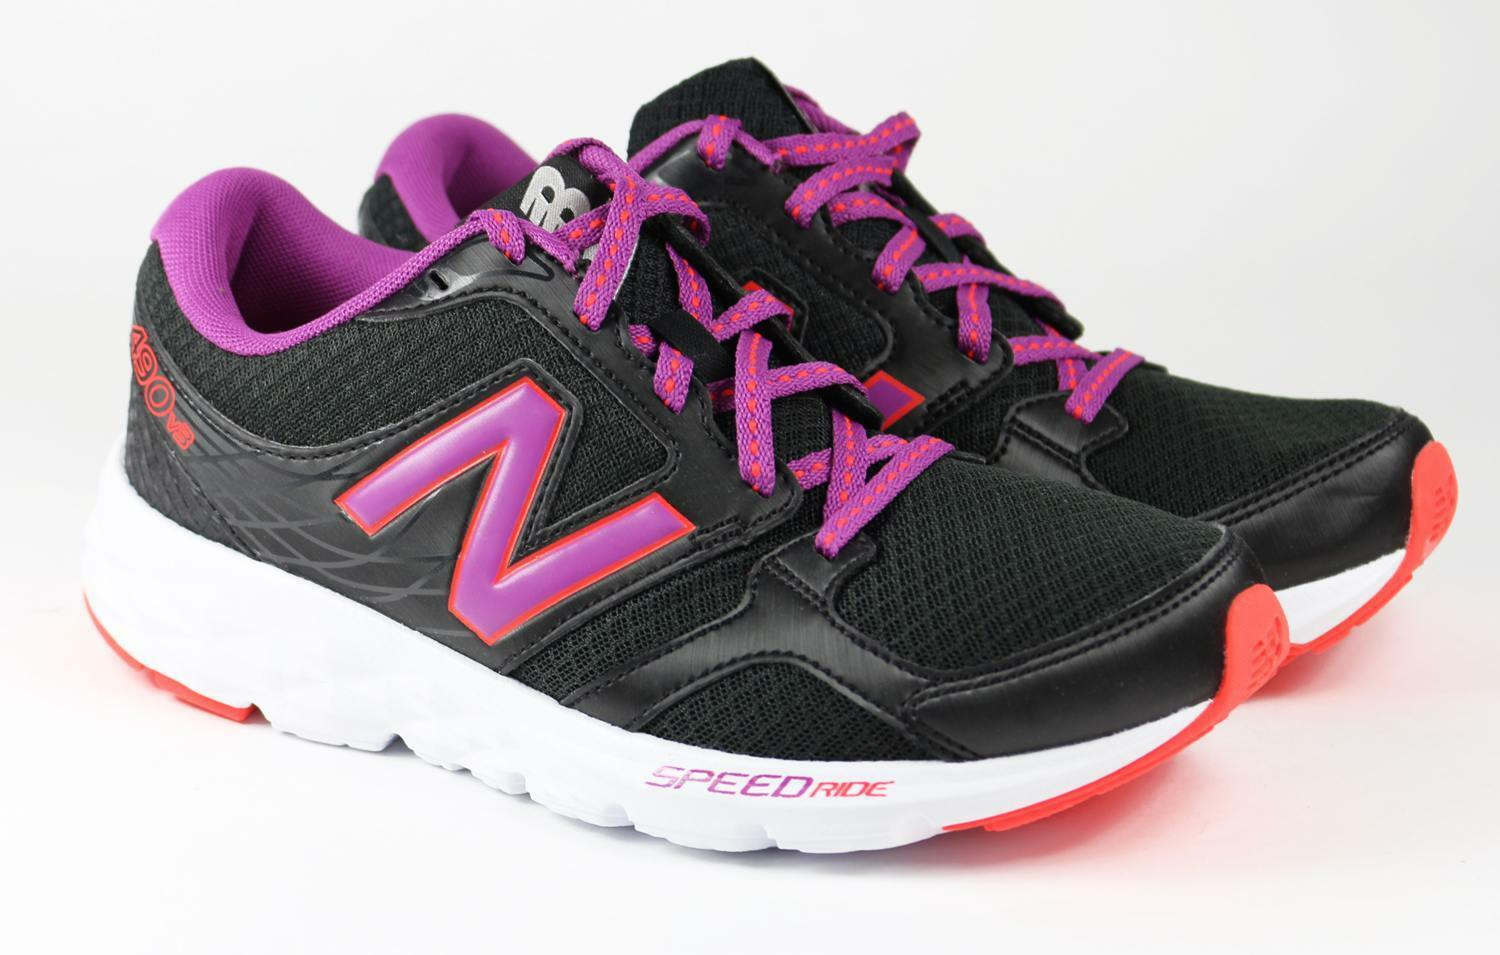 New balance 490 zapatillas deporte running zapatos fitness m18 wt690rt1 37,5